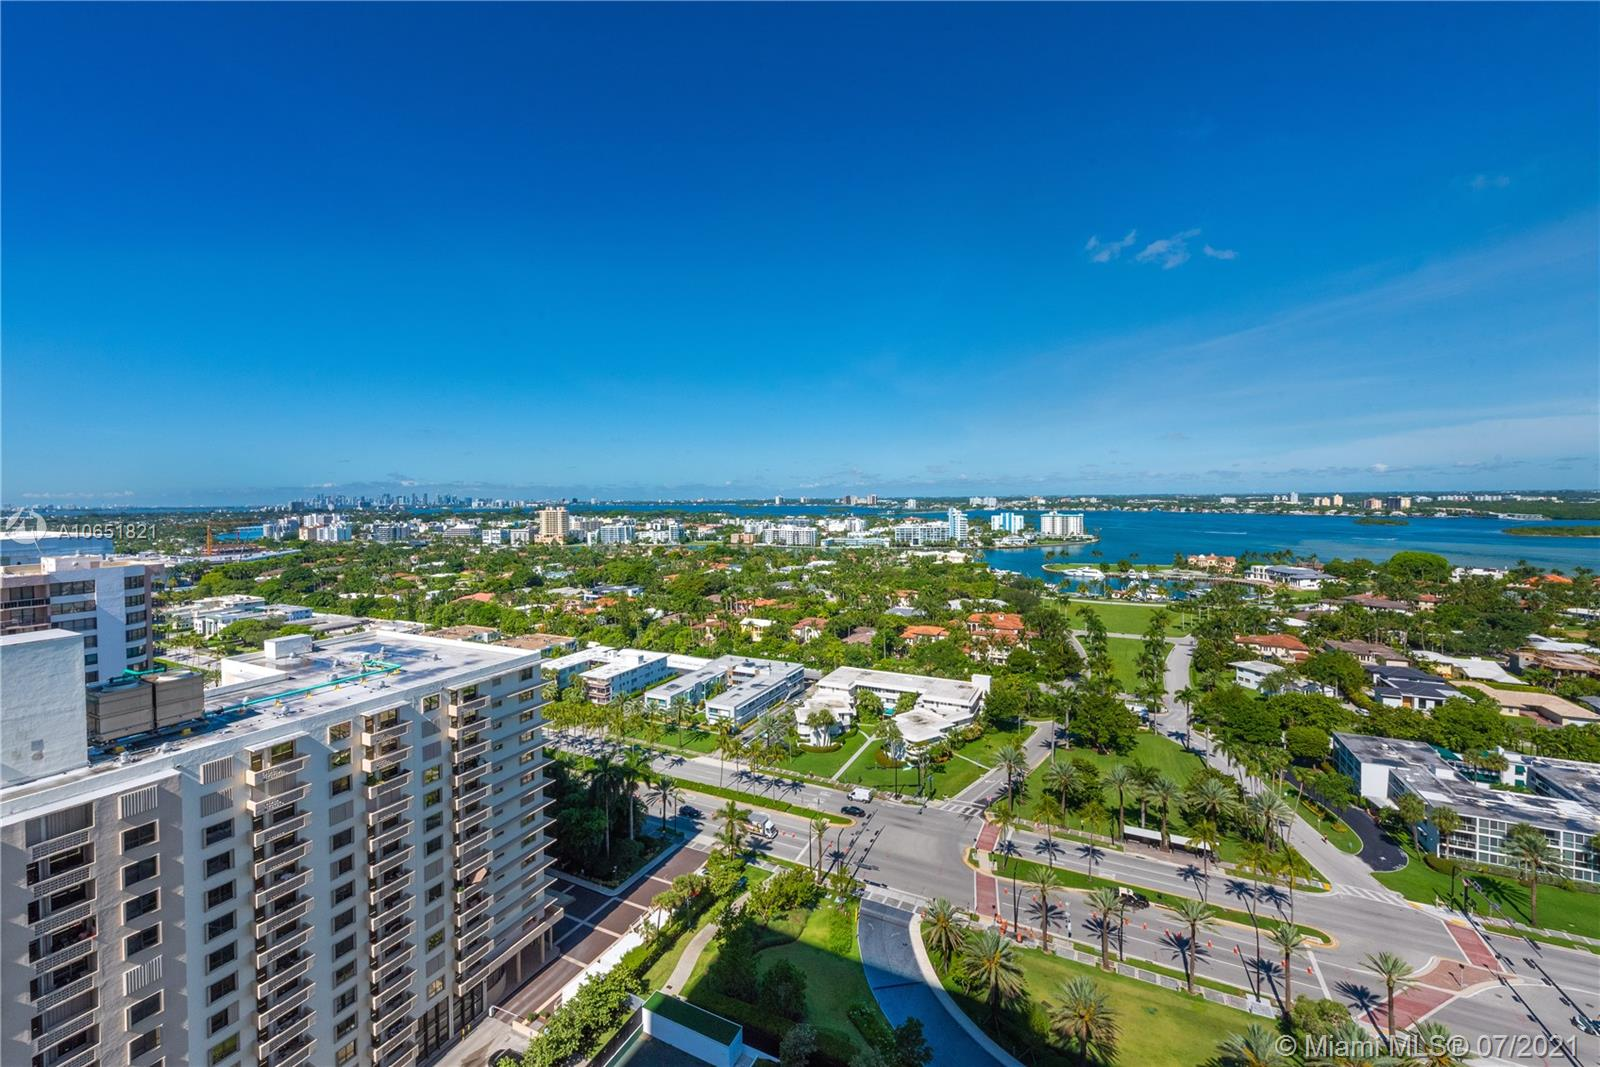 Oceana A new spectacular condominium paradise with amazing views to the bay, marina & sunset. 2 beds + Den w/ half bath. Gourmet, designer-ready kitchen. Resort Style Amenities: 24 hours concierge, fitness center, world class spa, Olympic style lap pool, large relaxation & leisure pool. 400 ft beach wide with beach service. Private restaurant & outdoor café and tennis courts. Business center. Kids room. Private cinema. Enjoy your day among stunning artwork by Jeff Koon's that grace the gardens.